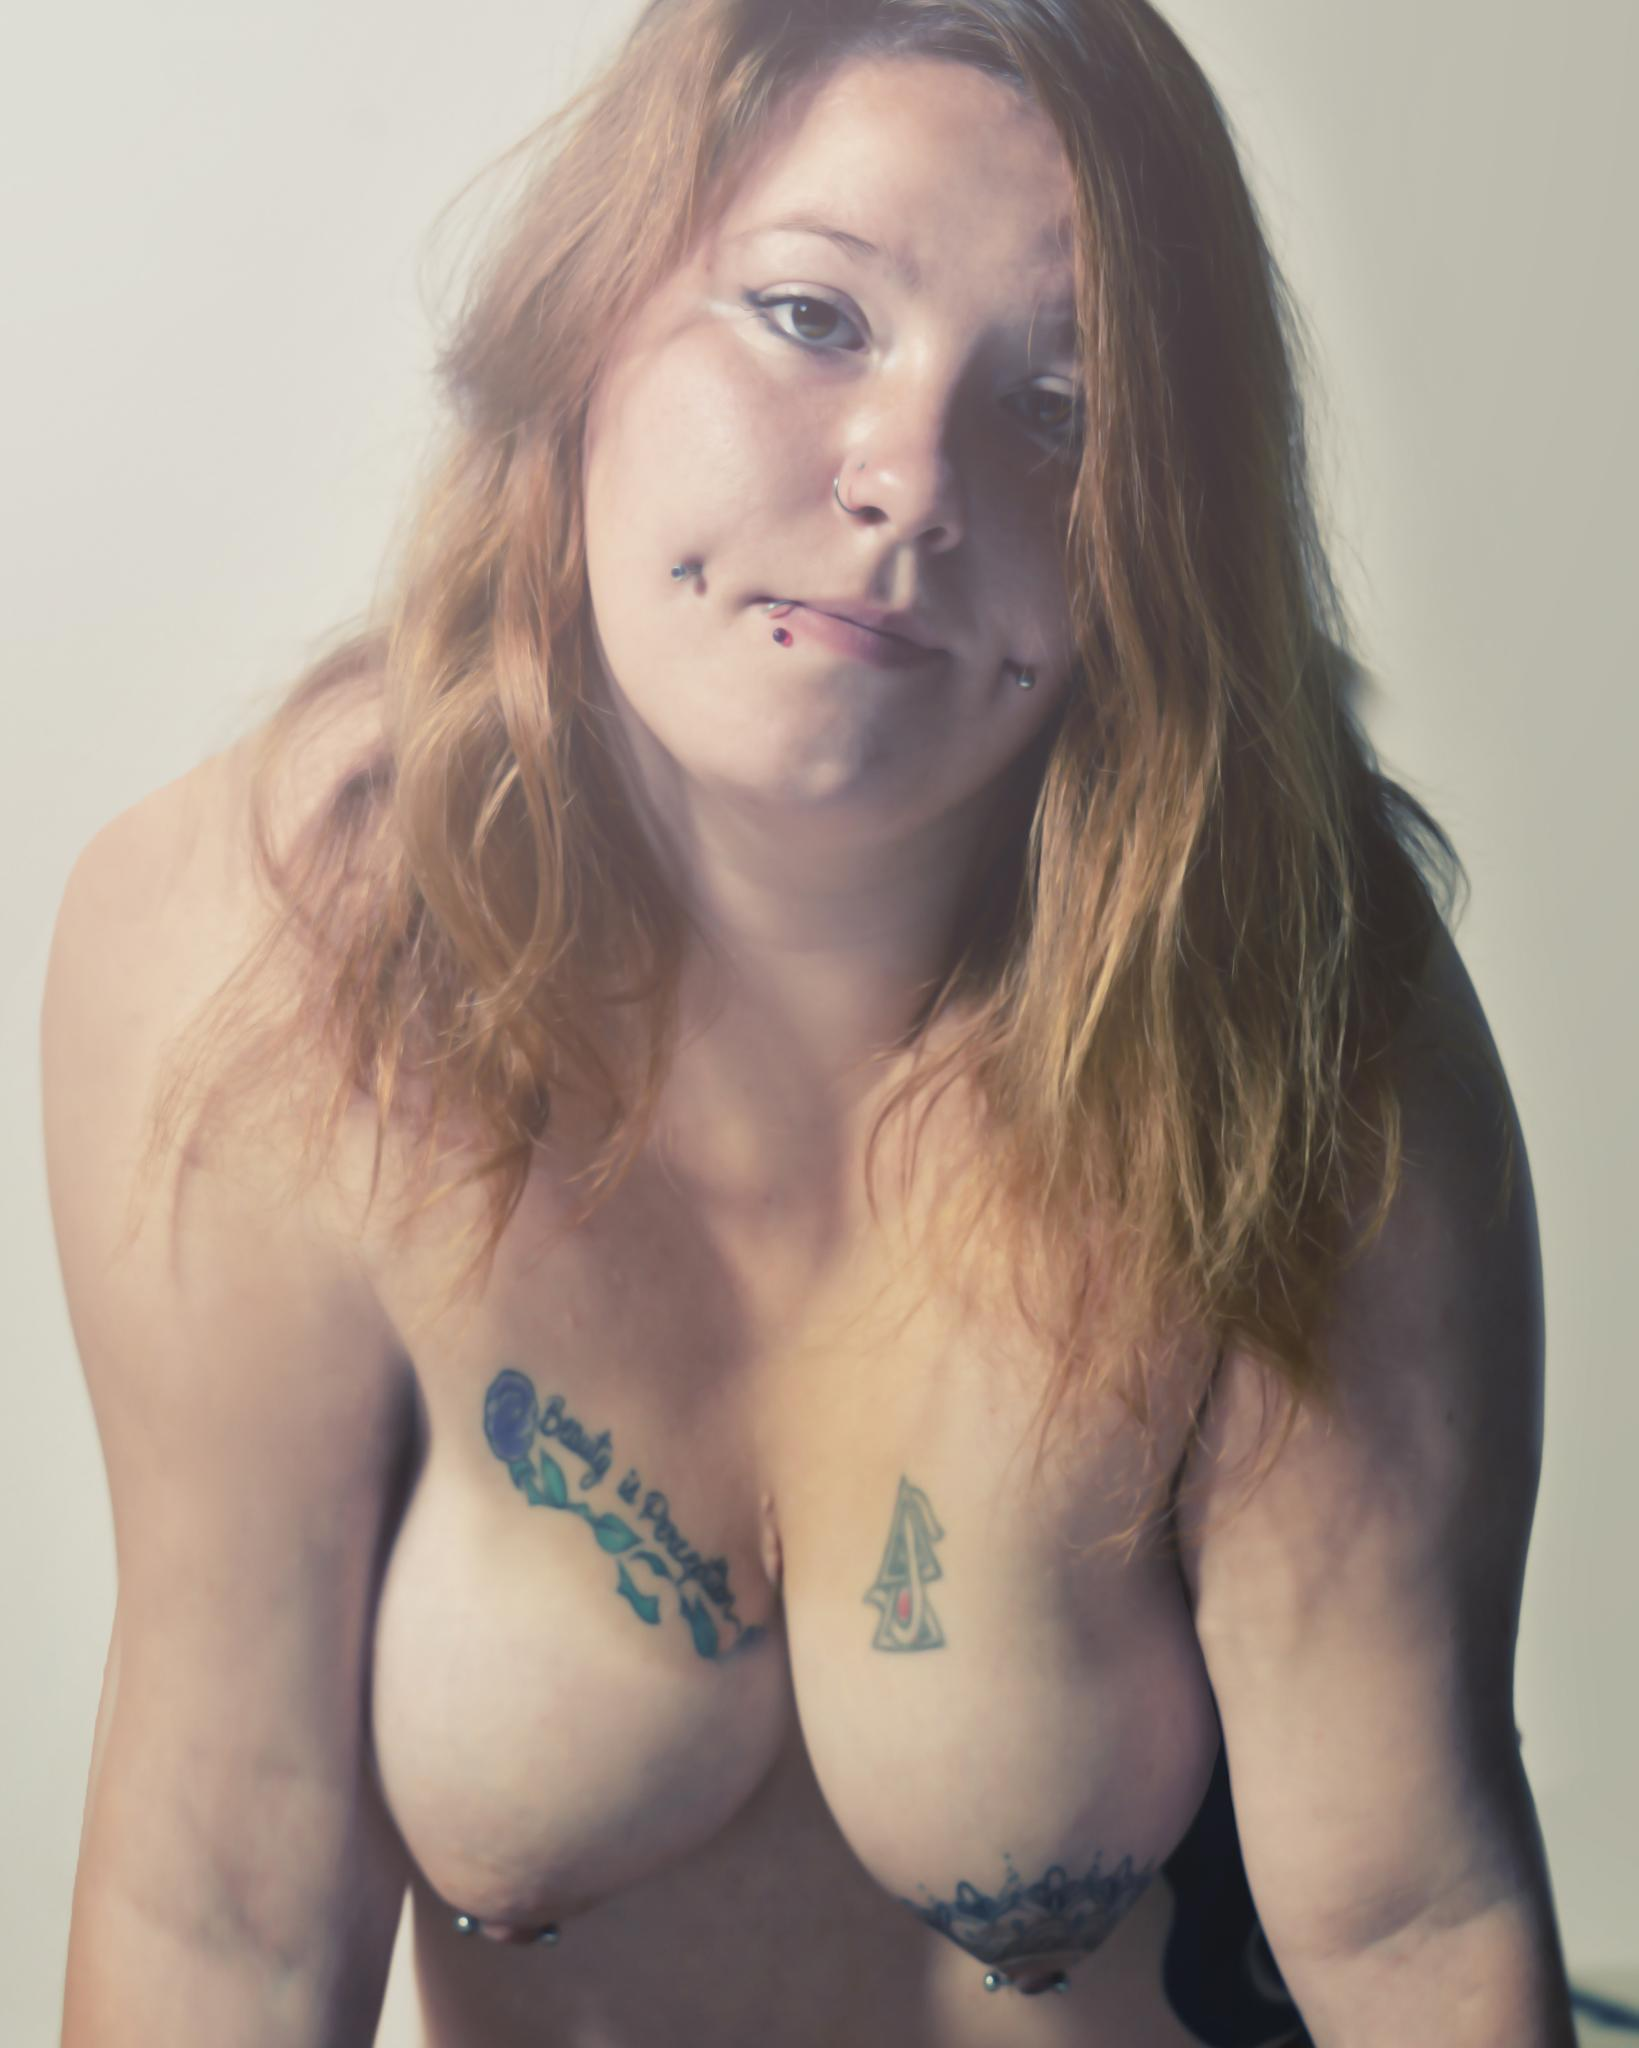 Untitled Nude by Private_Idaho